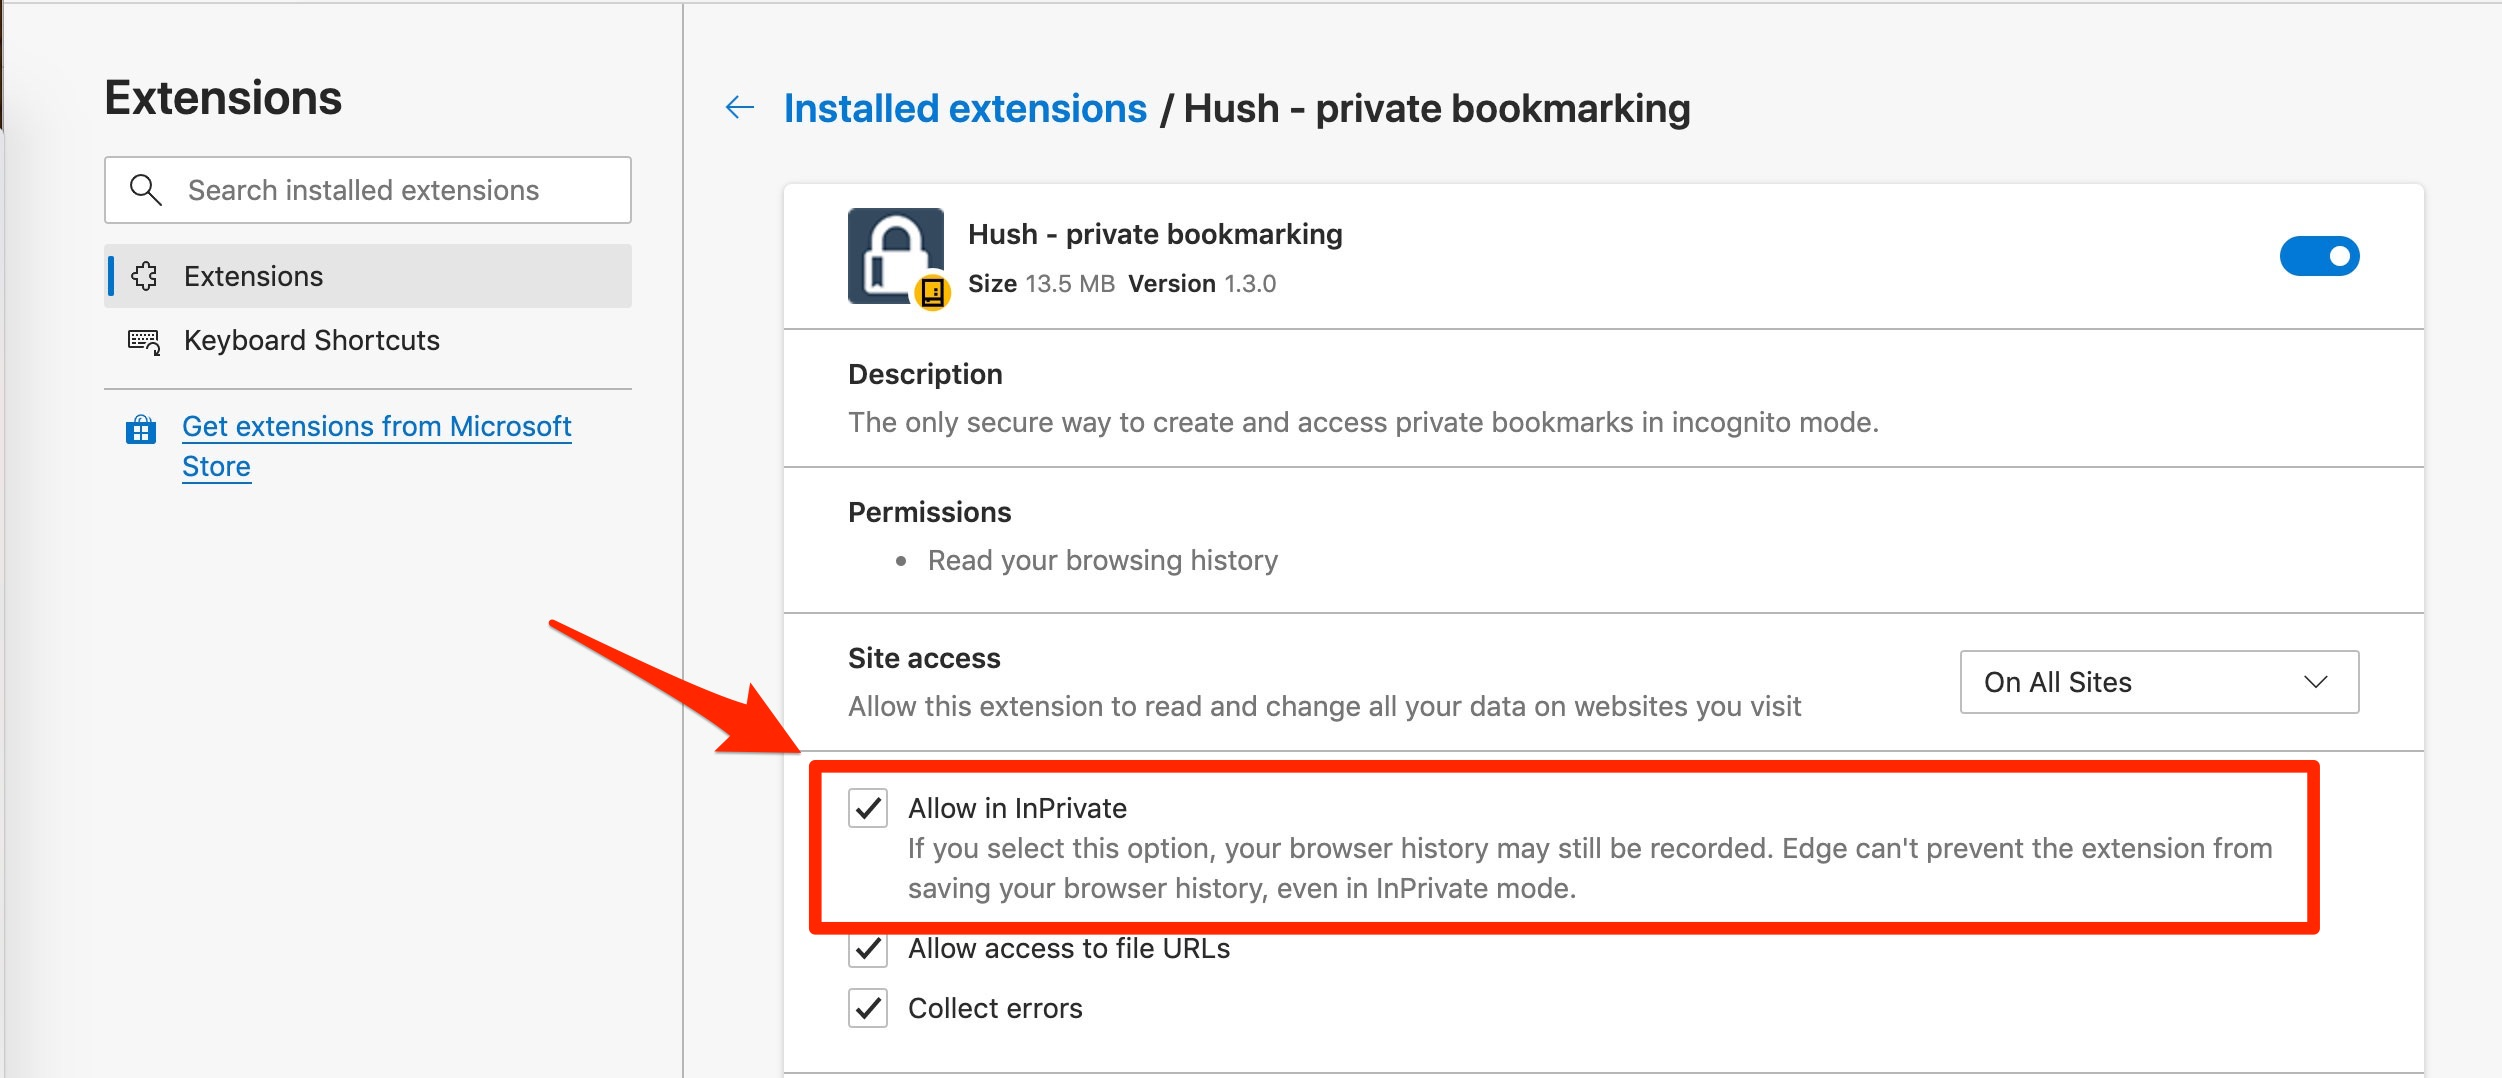 hush_extensions_page_2